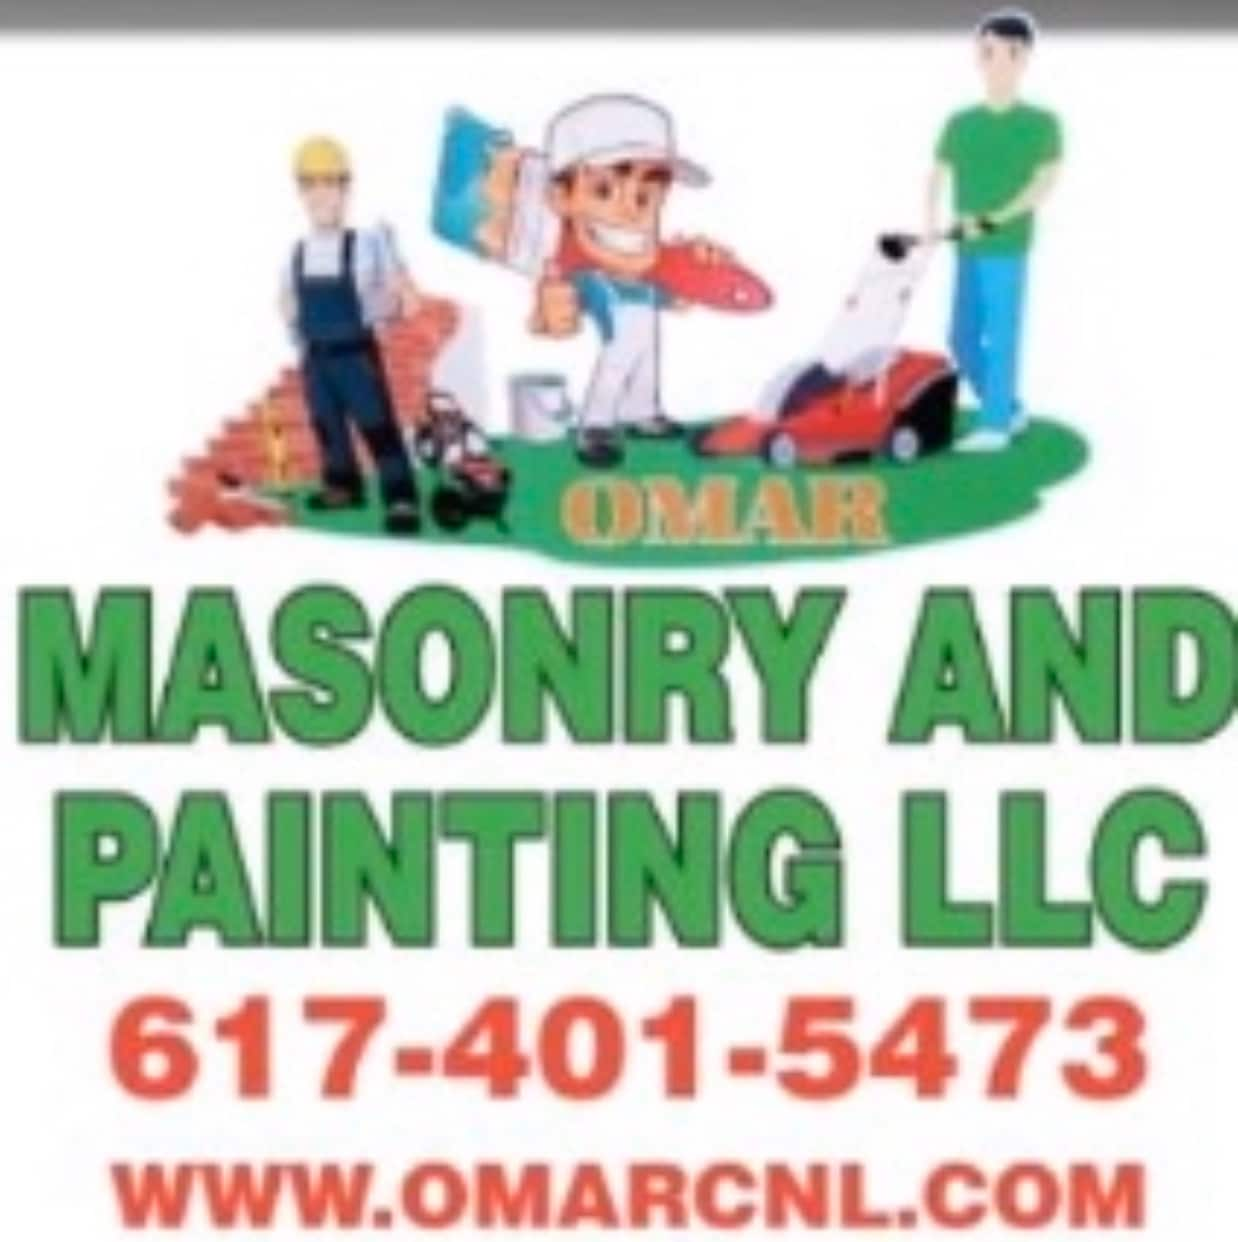 Omar Masonry and Painting, LLC